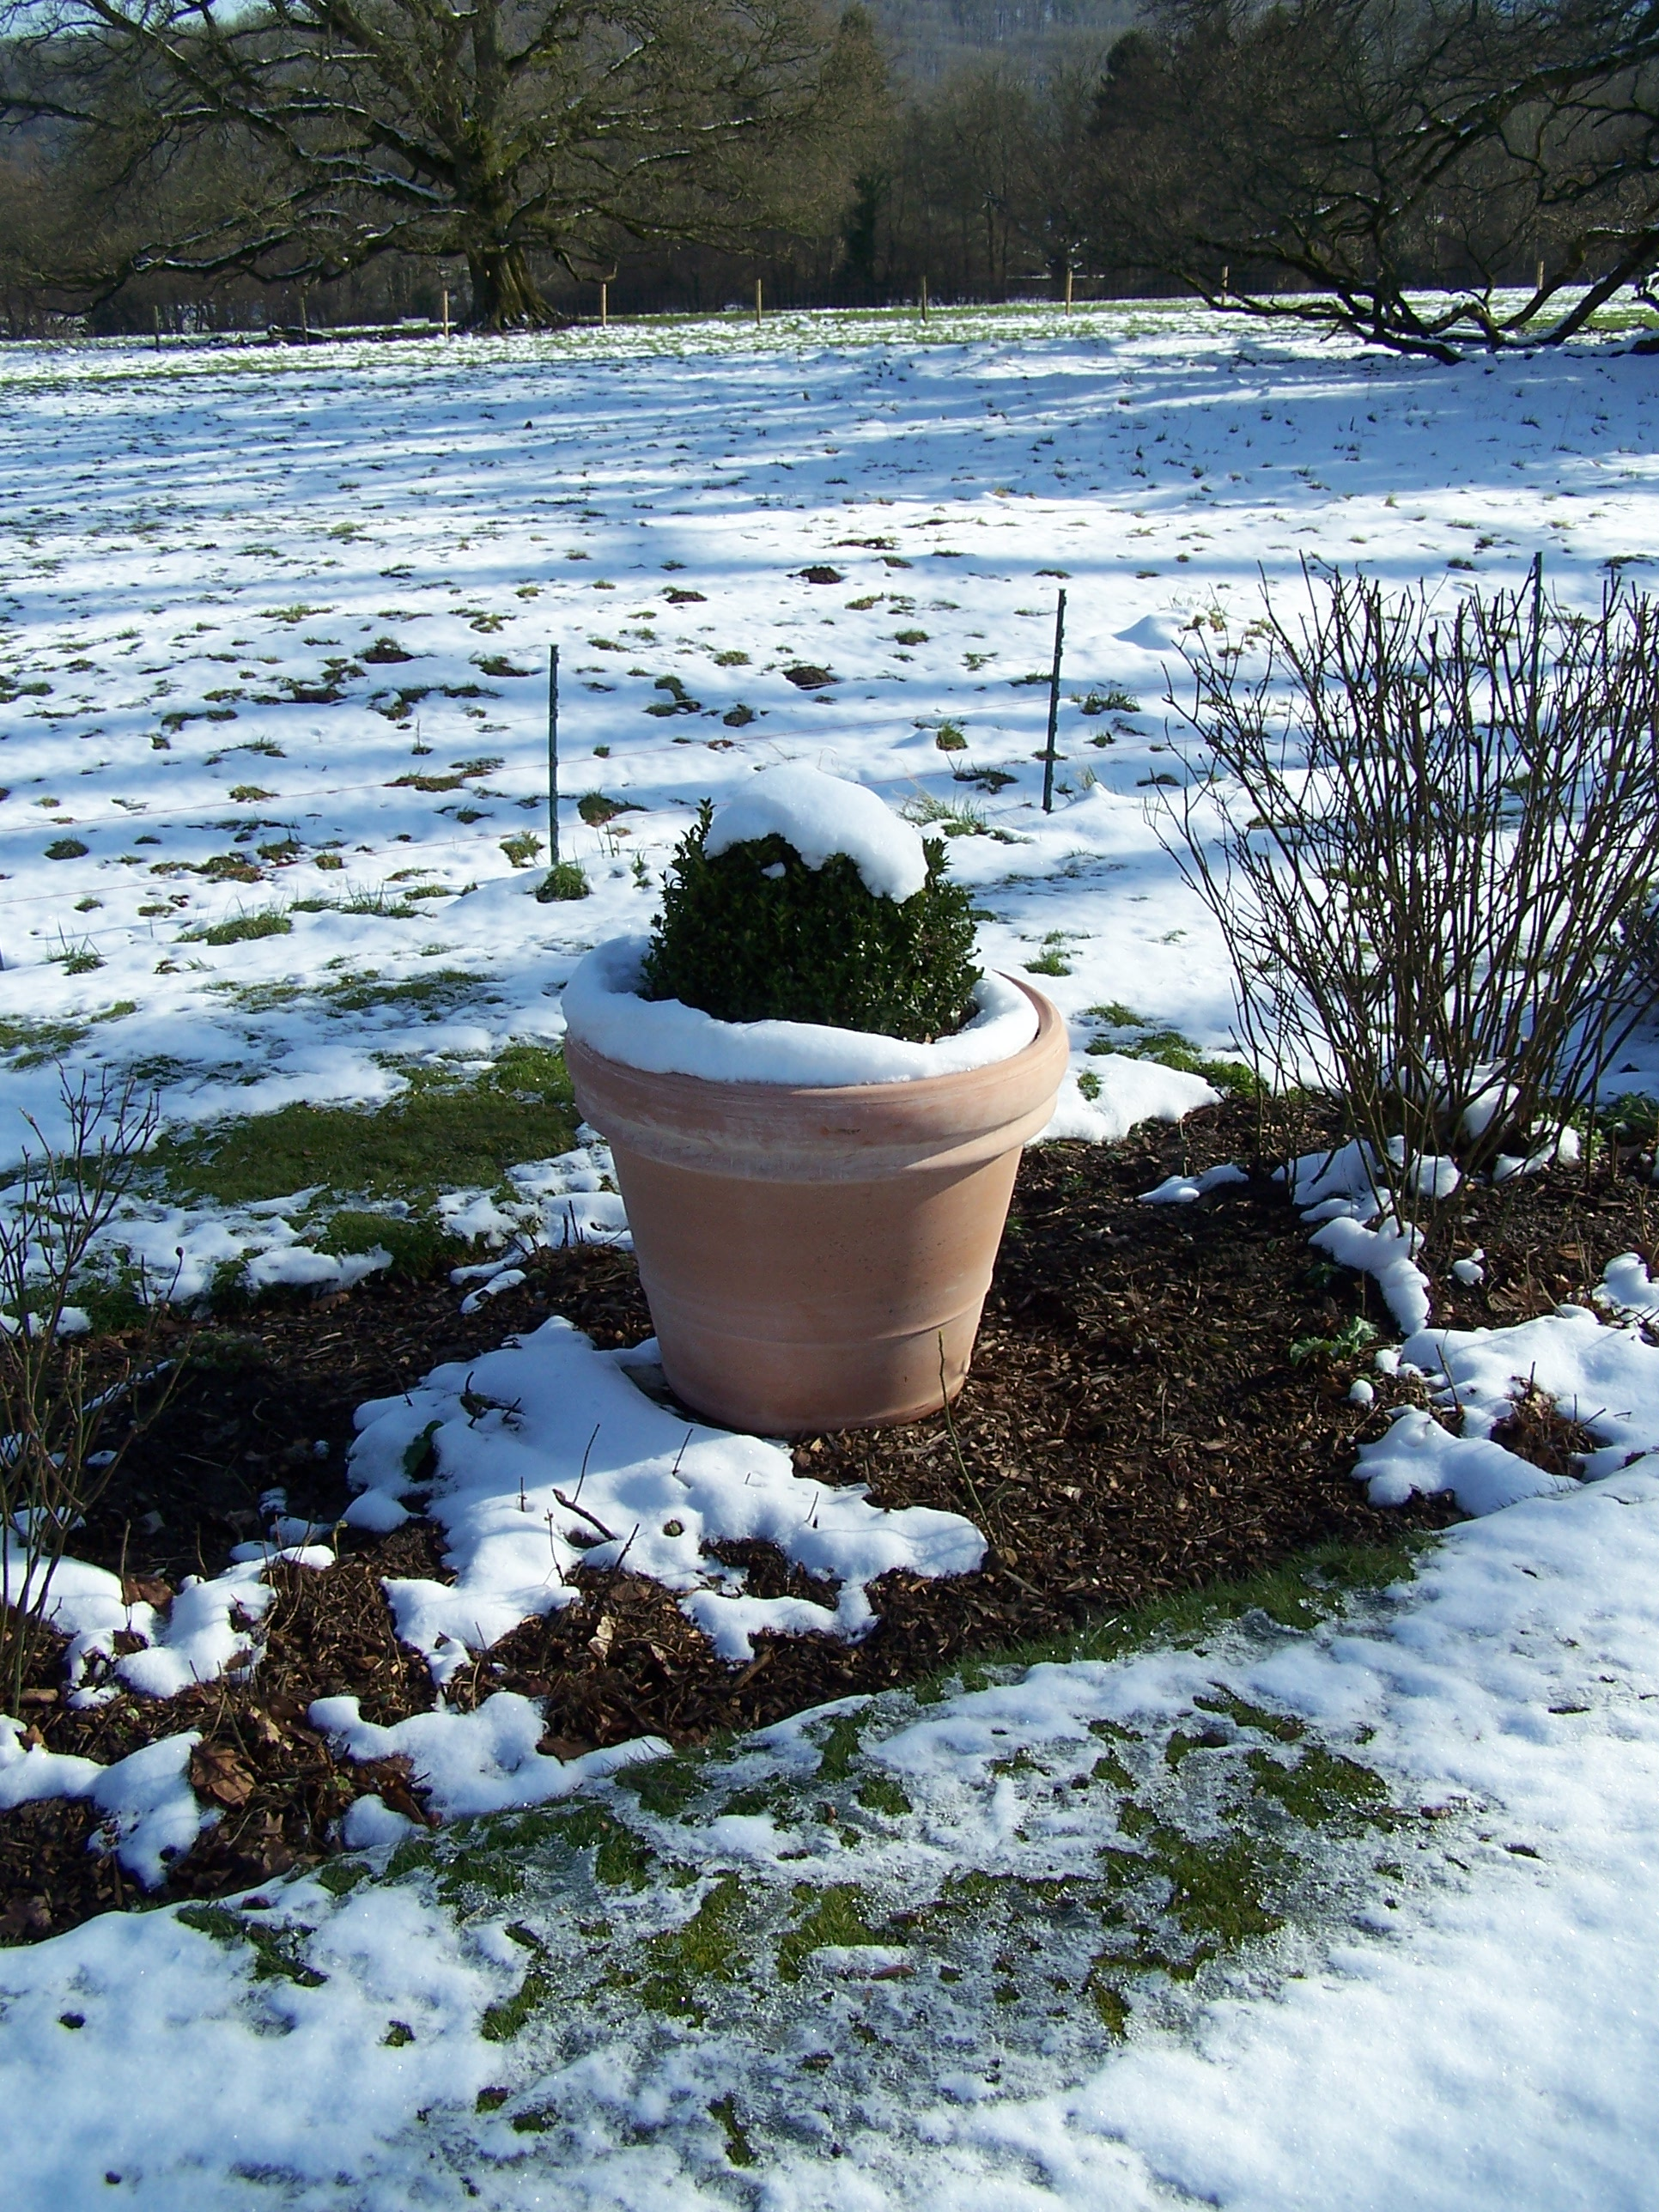 One of the new pots in the melting snow